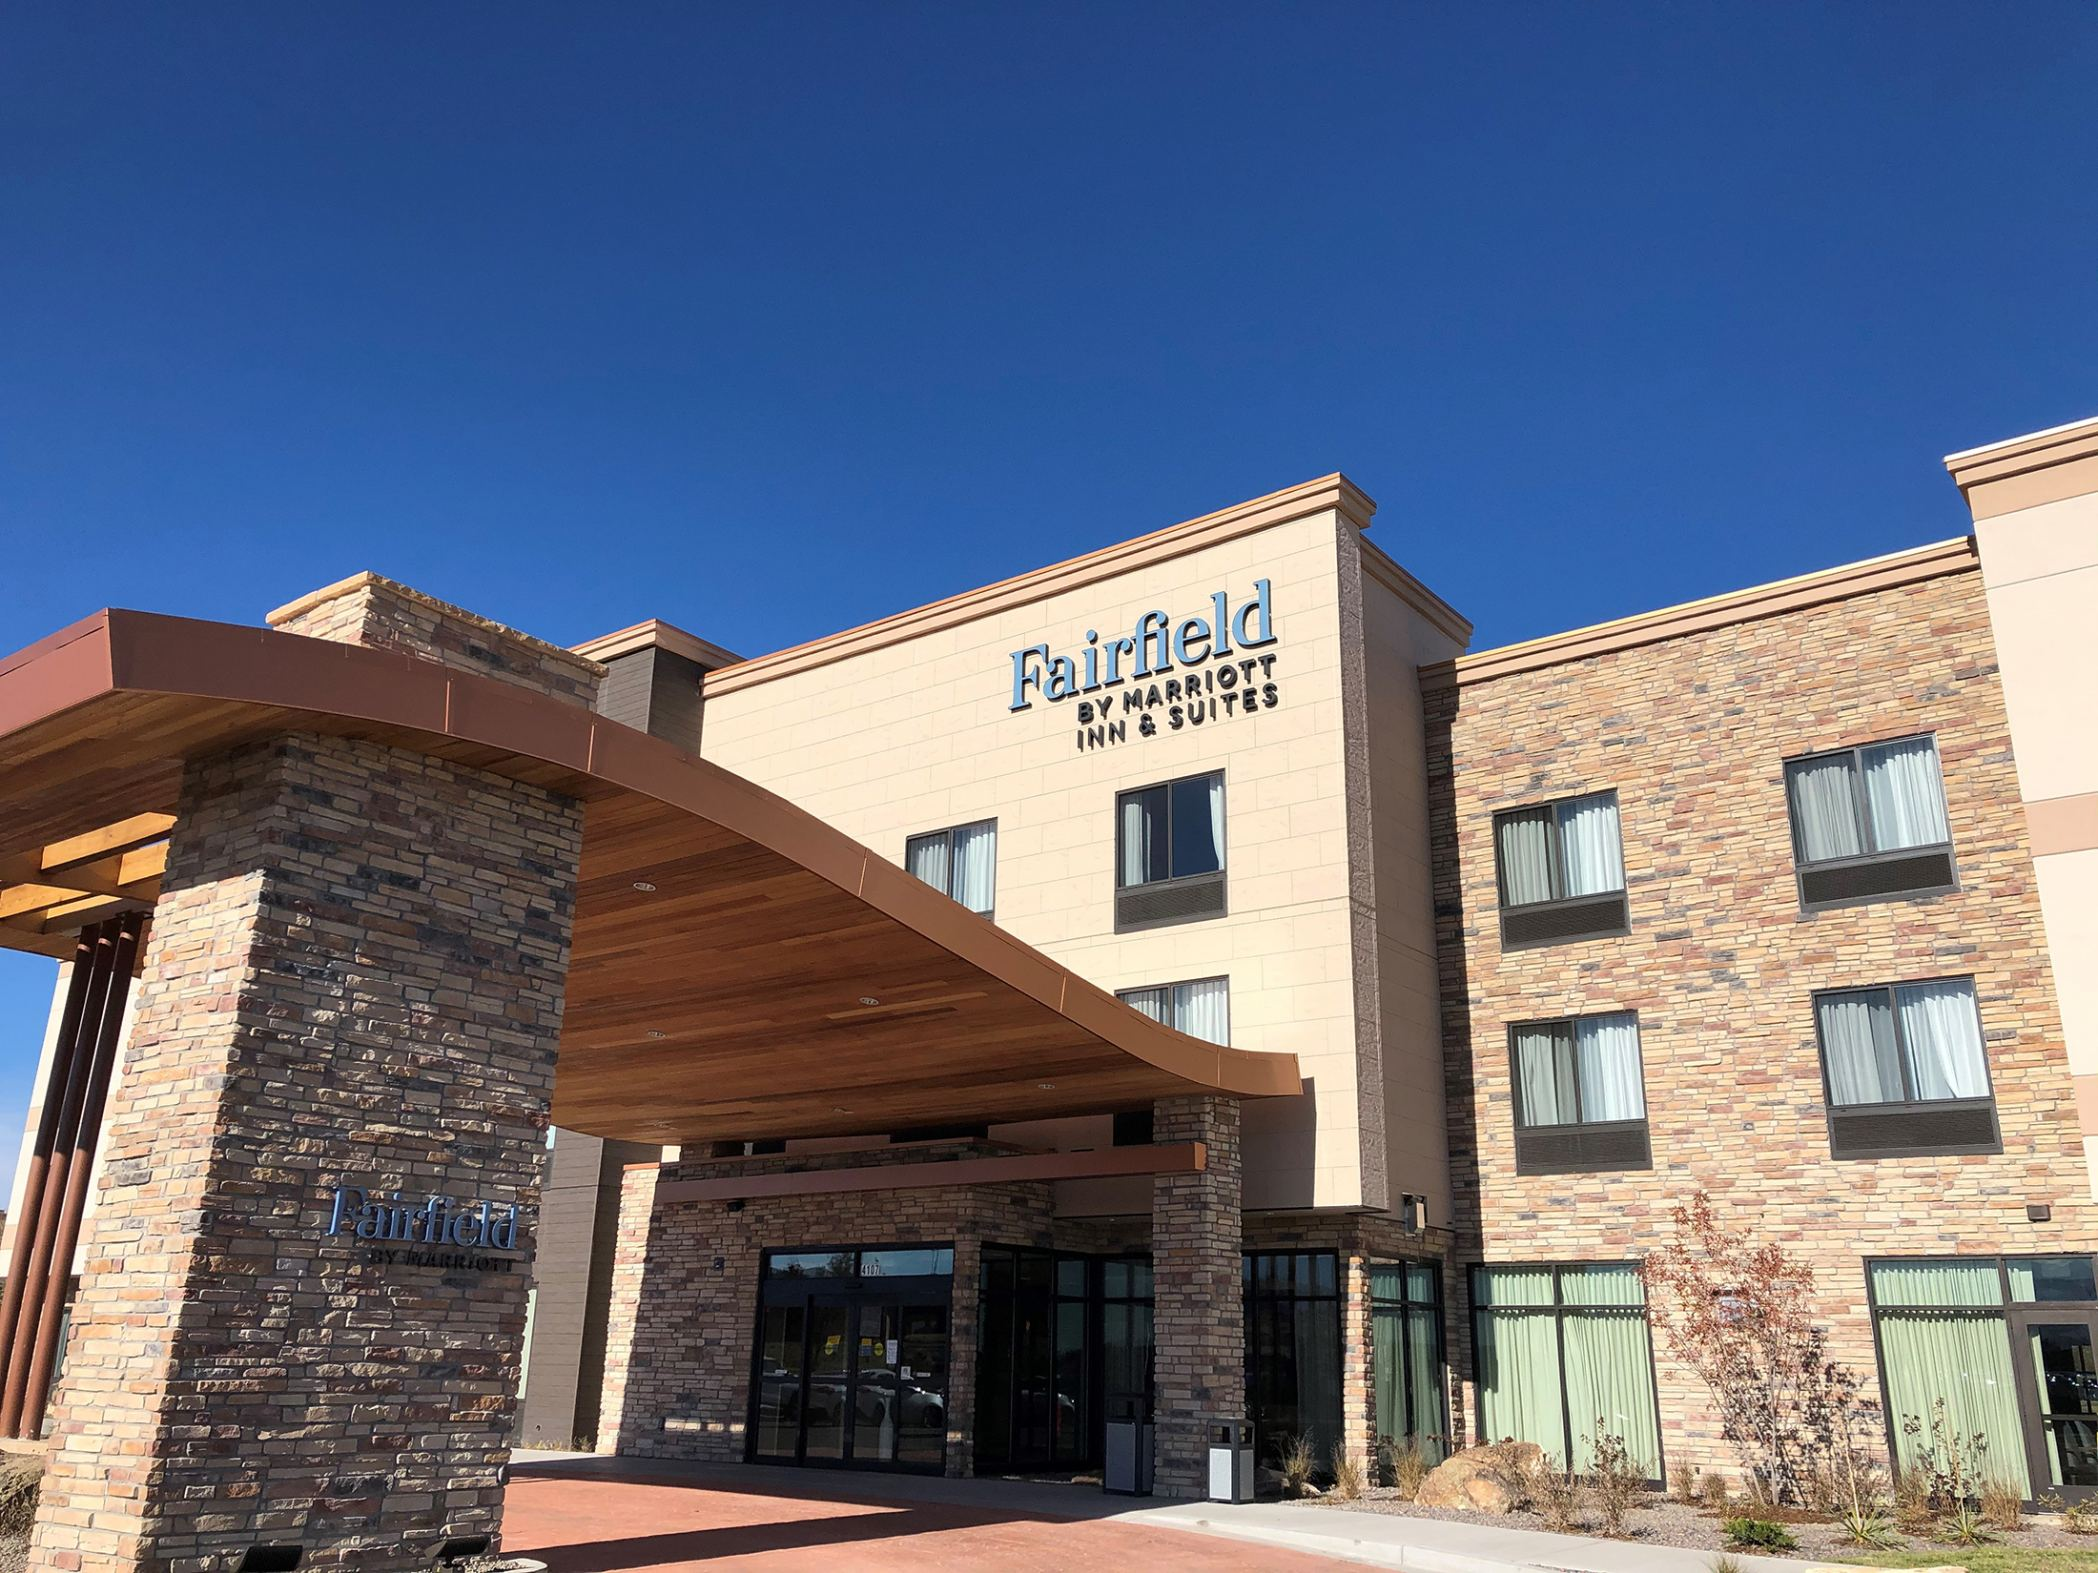 Fairfield by Marriott Inn & Suites Colorado Springs East/Ballpark